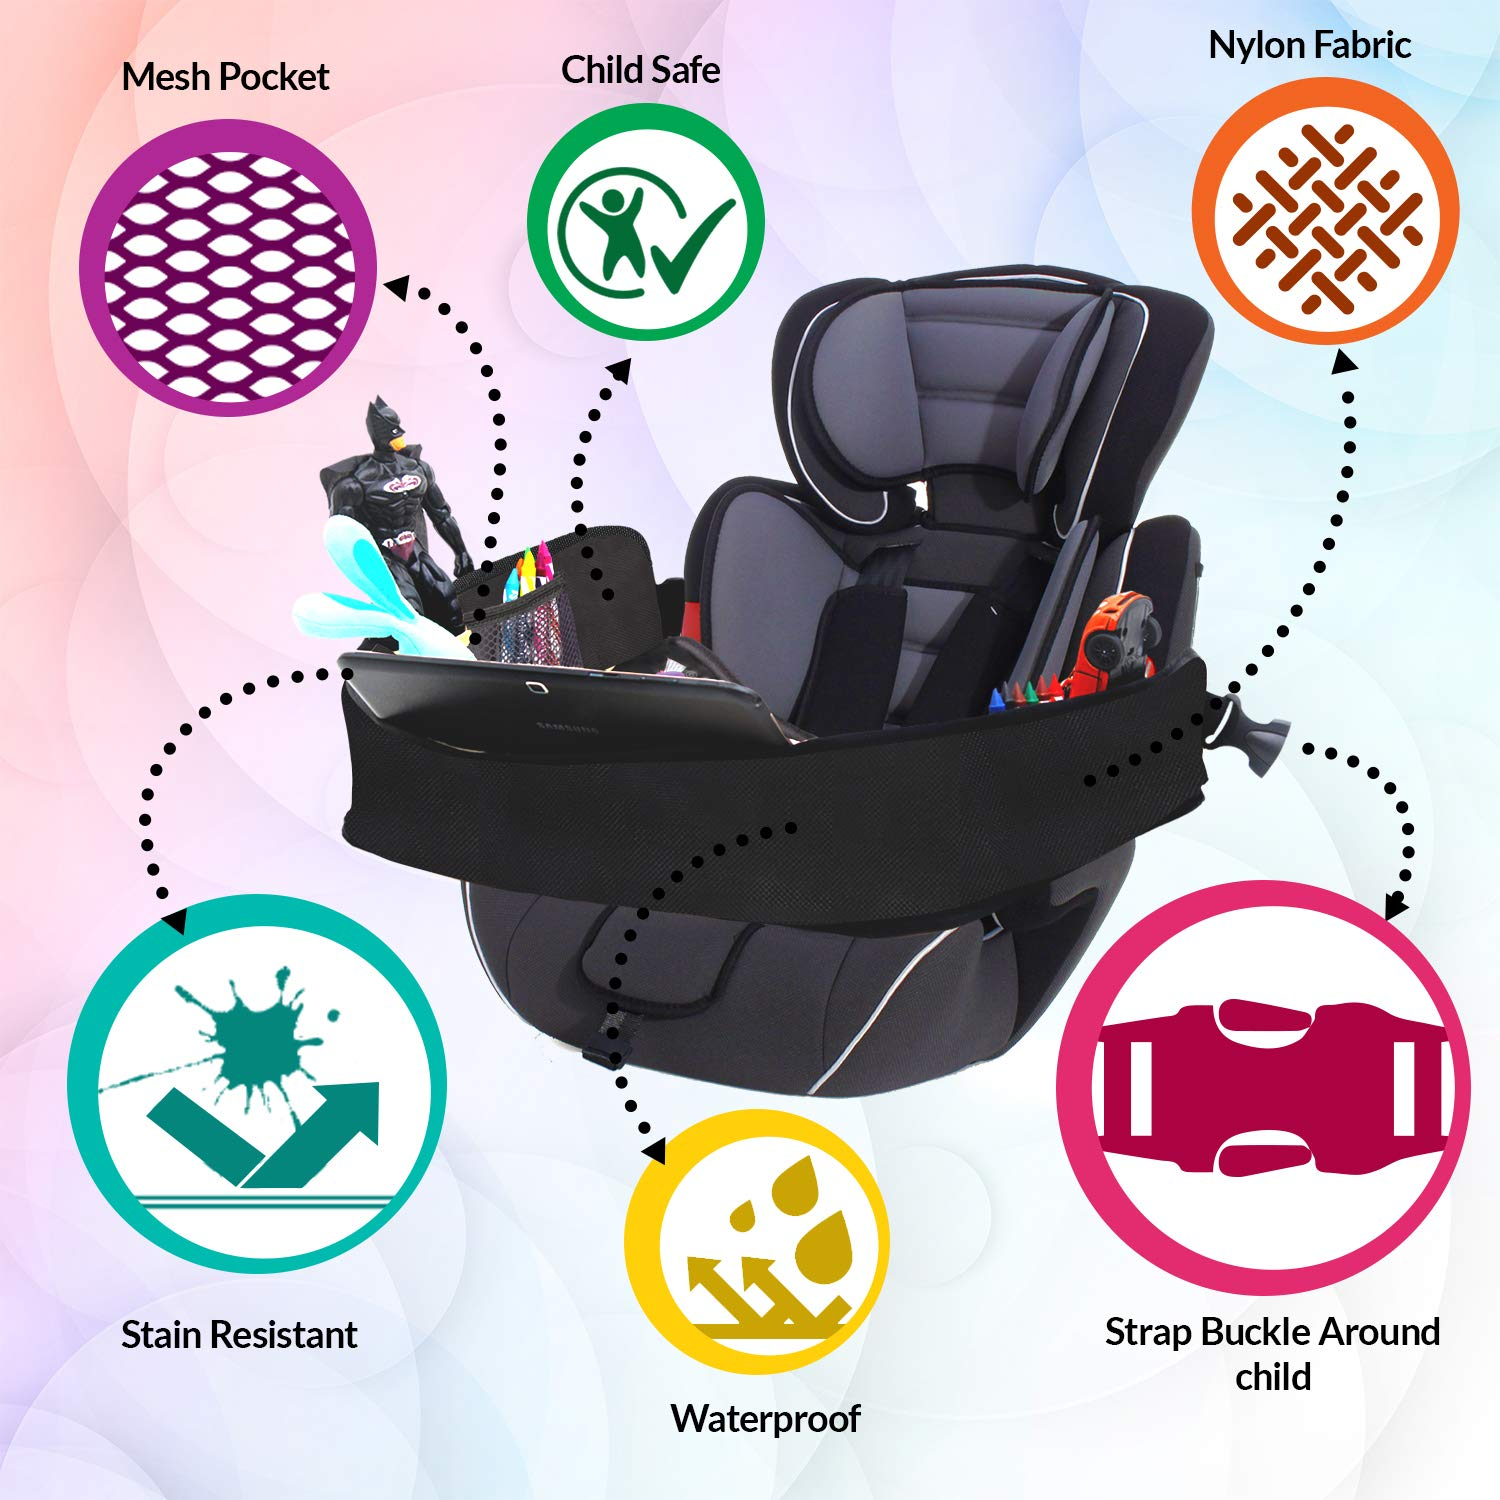 Tablet Holder Toy Organizer Crayon Organizer Strong Buckles Waterproof Mesh Pockets Sturdy Base /& Side Walls 16 x 14 Reinforced Surface DMoose Toddler Car Seat Travel Tray